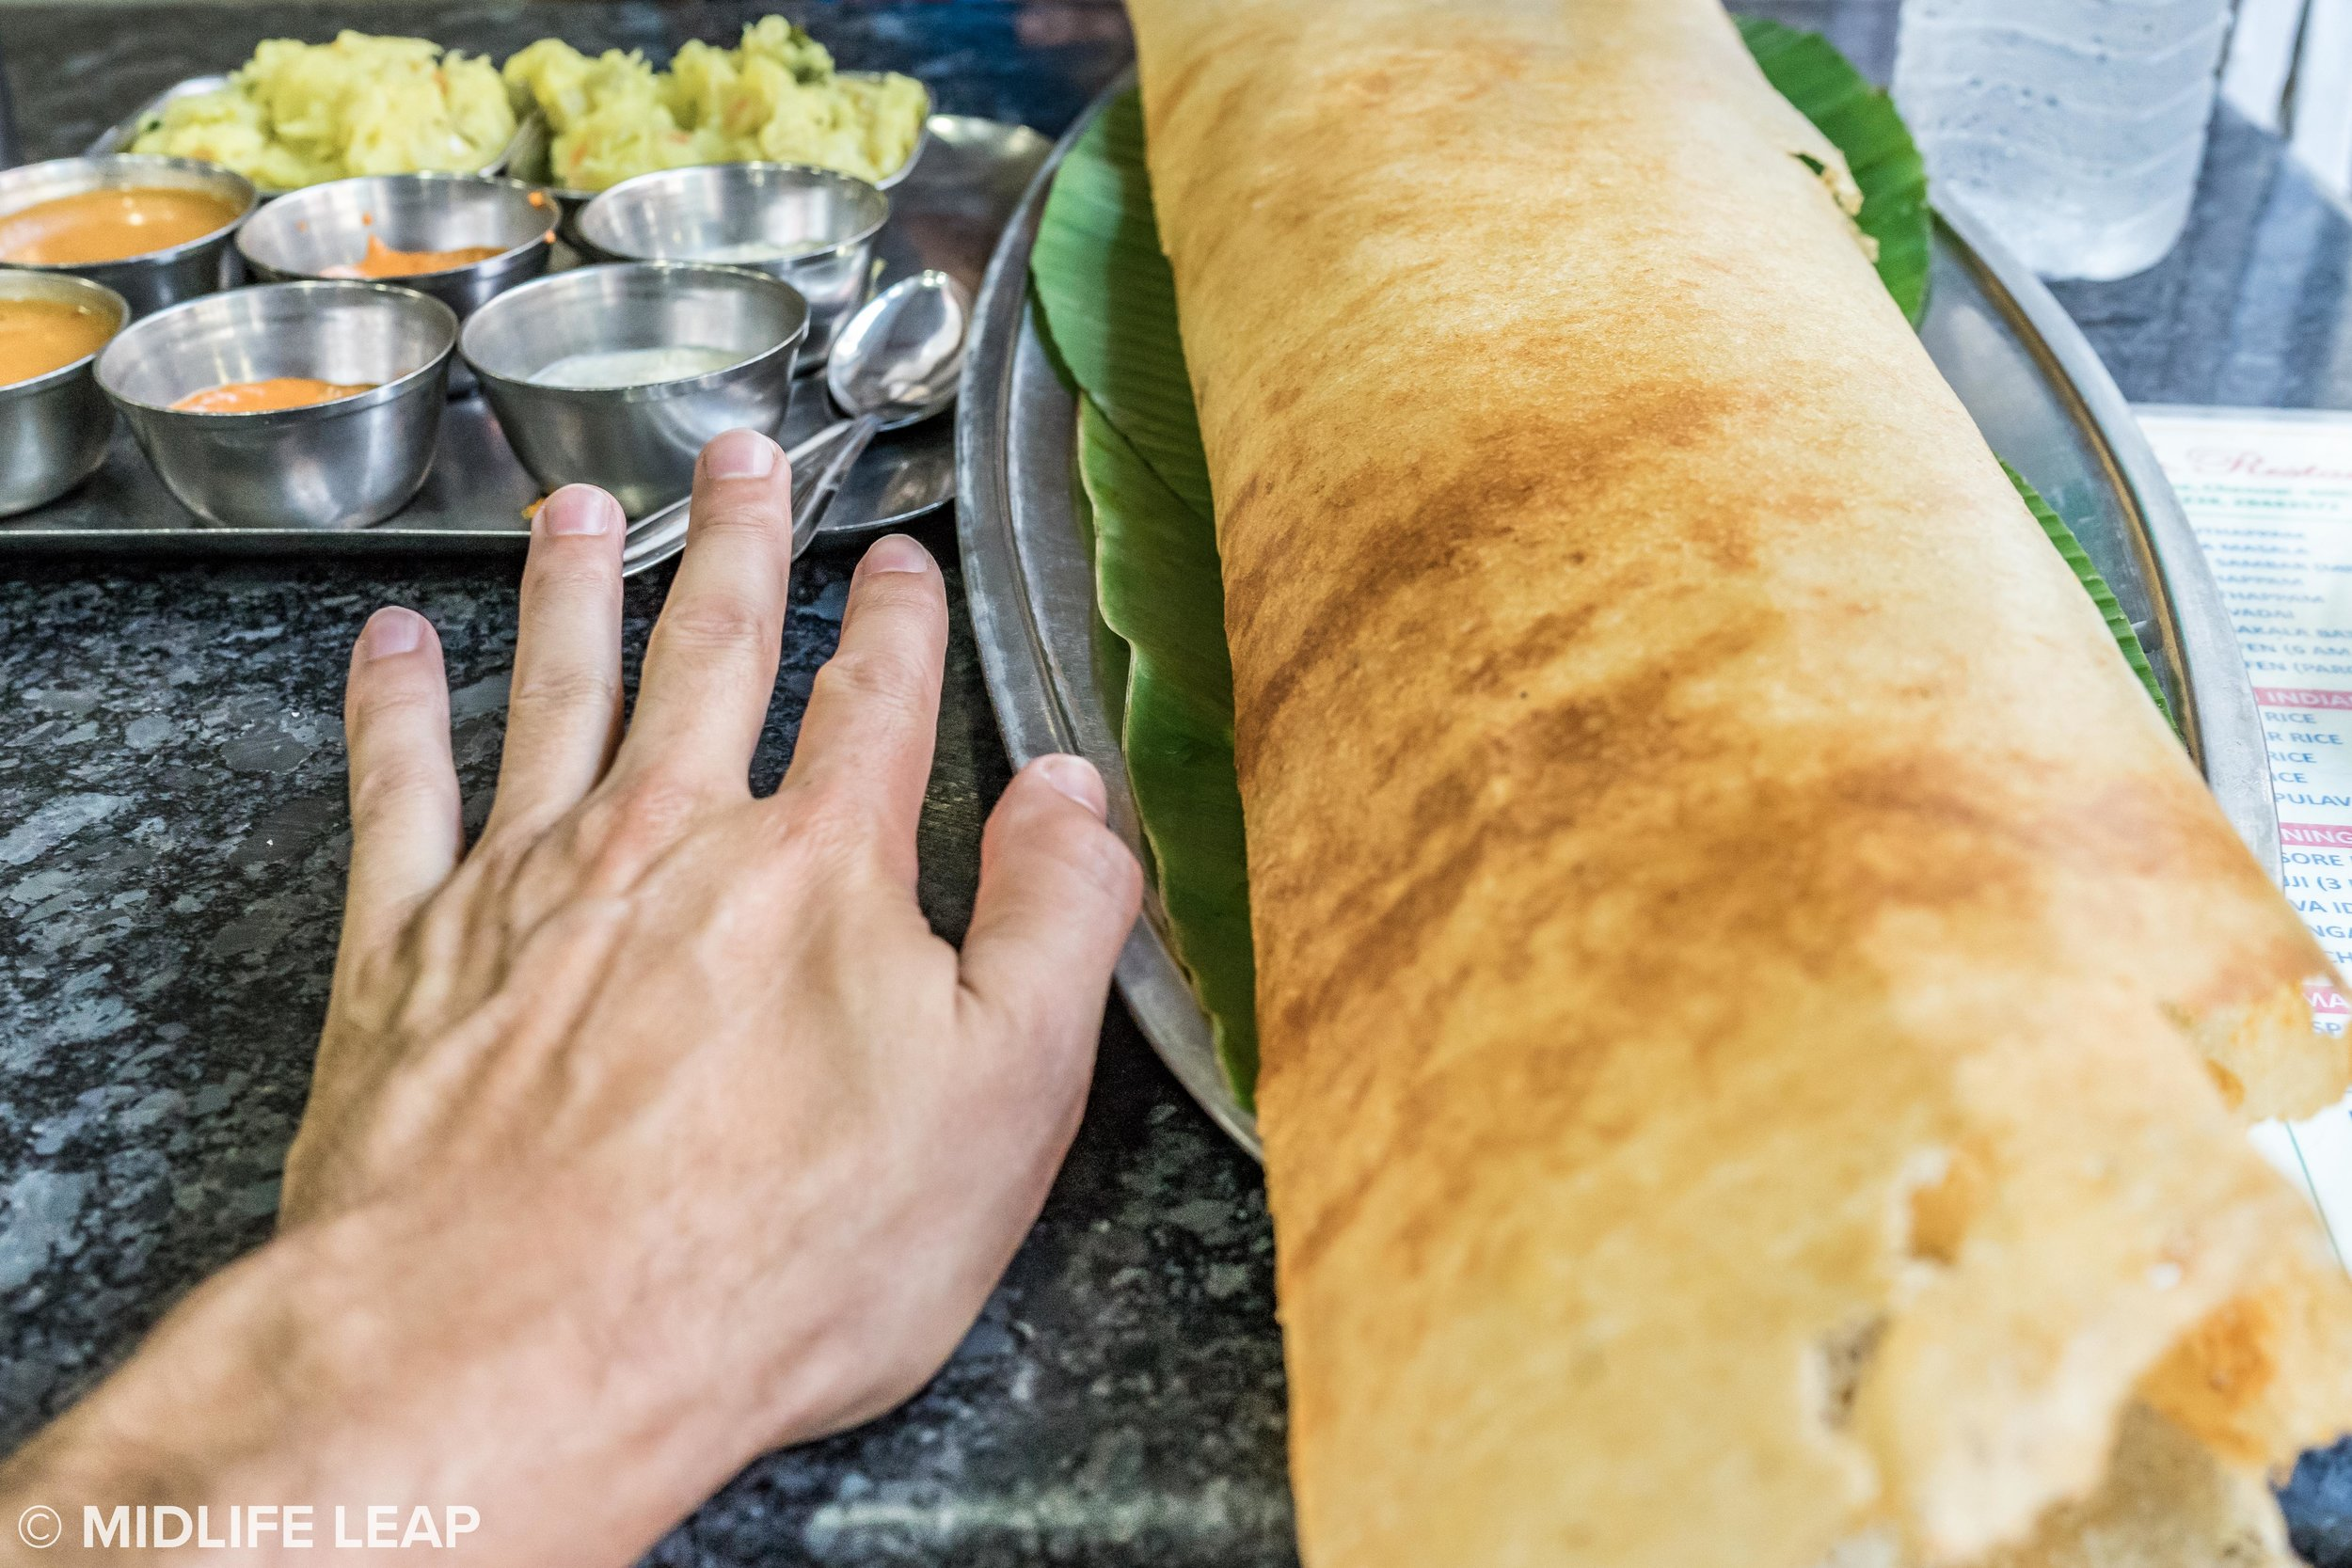 For scale (couldn't fit the whole dosa in the shot)